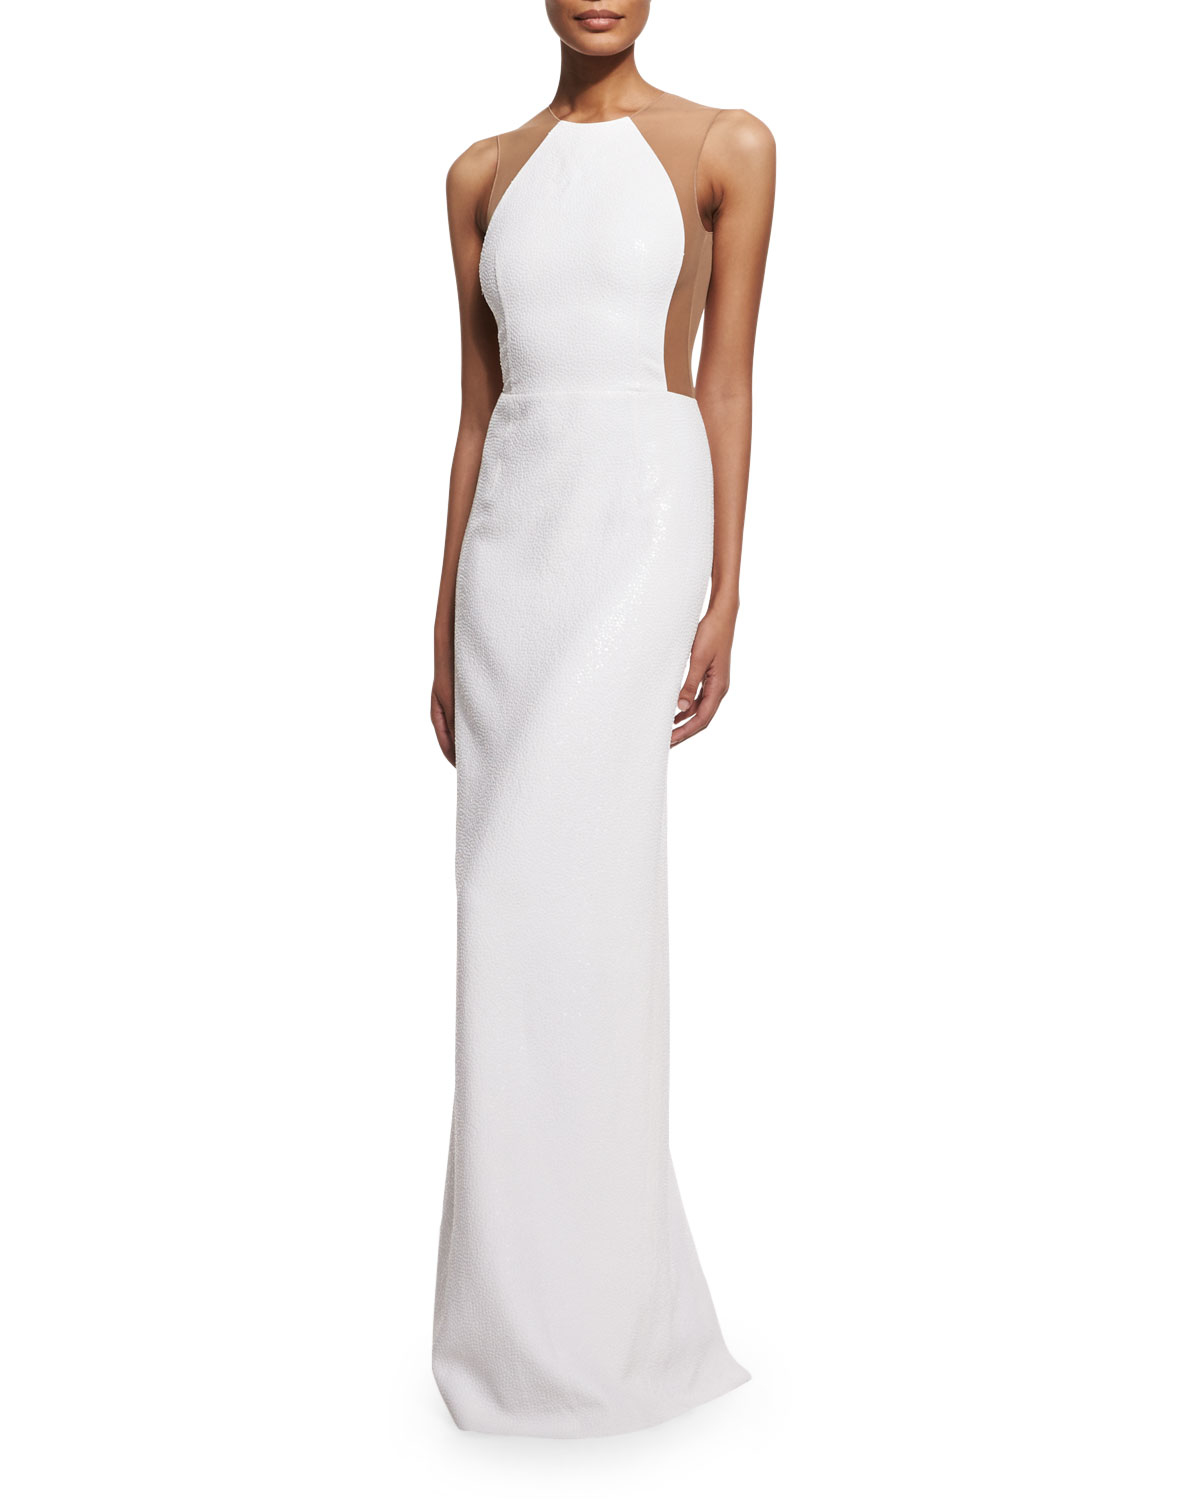 Lyst - Michael Kors Illusion Backless Pebbled Crepe Gown in White